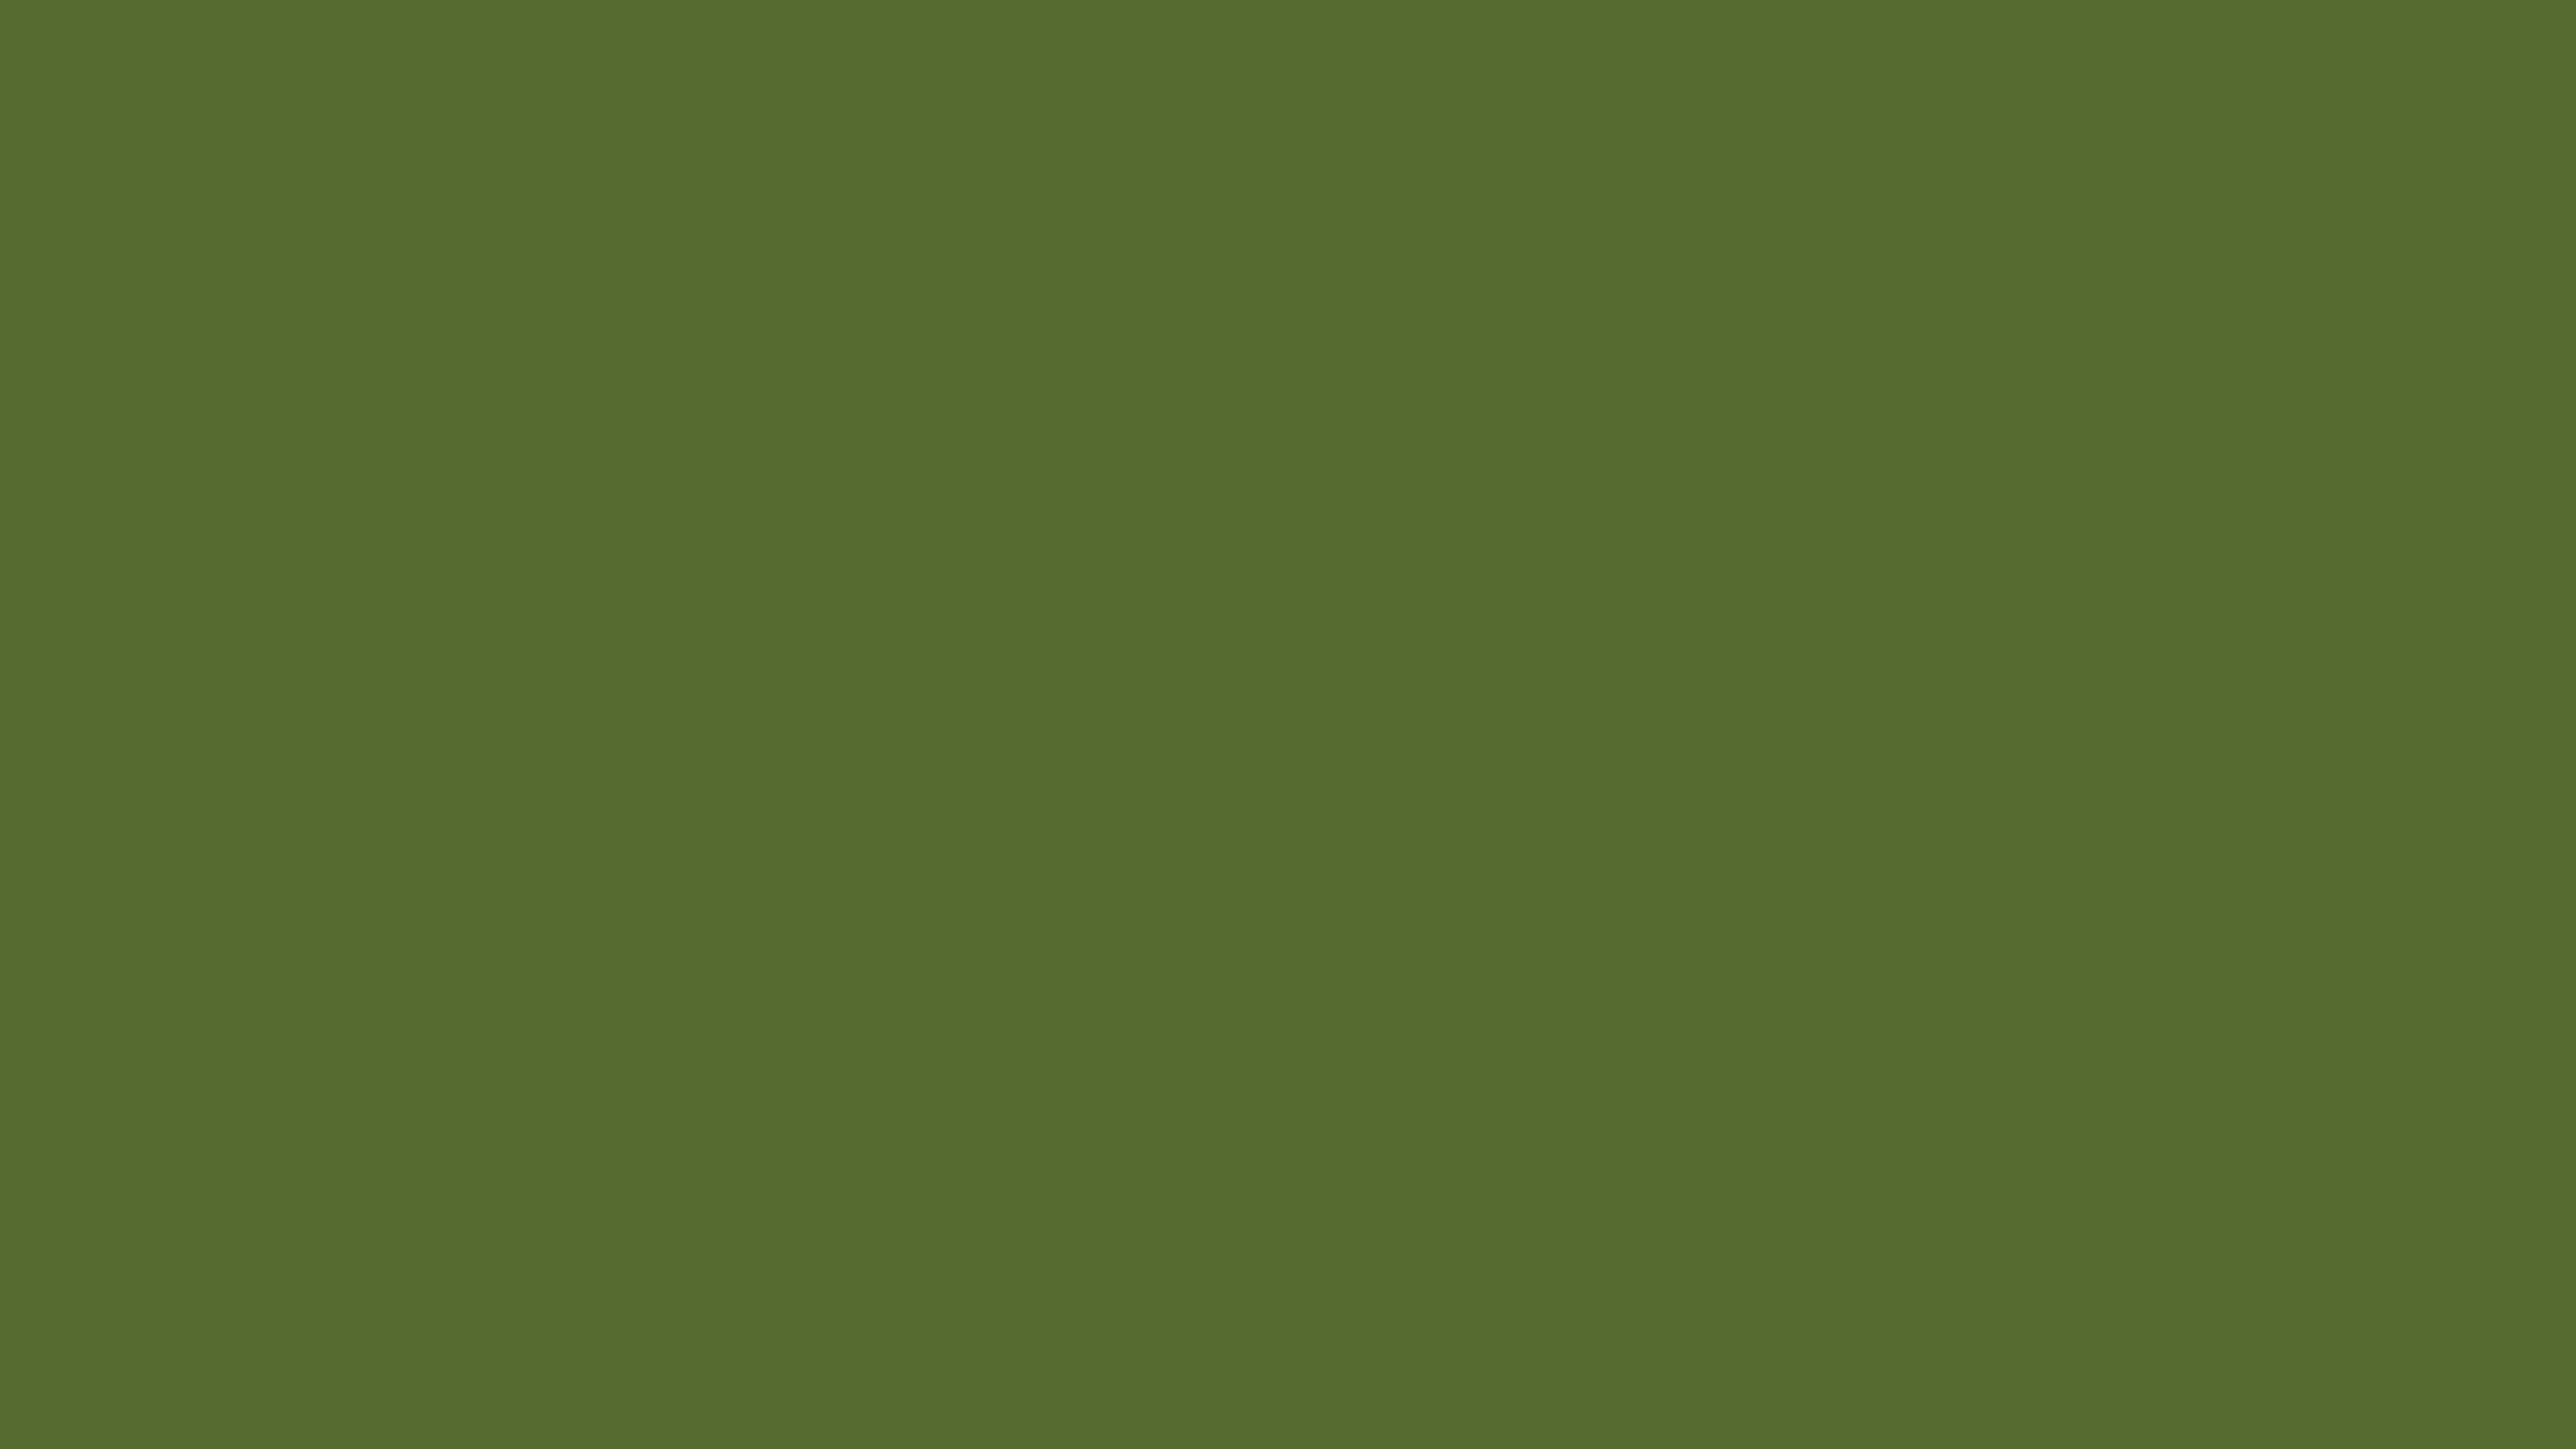 5120x2880 Dark Olive Green Solid Color Background